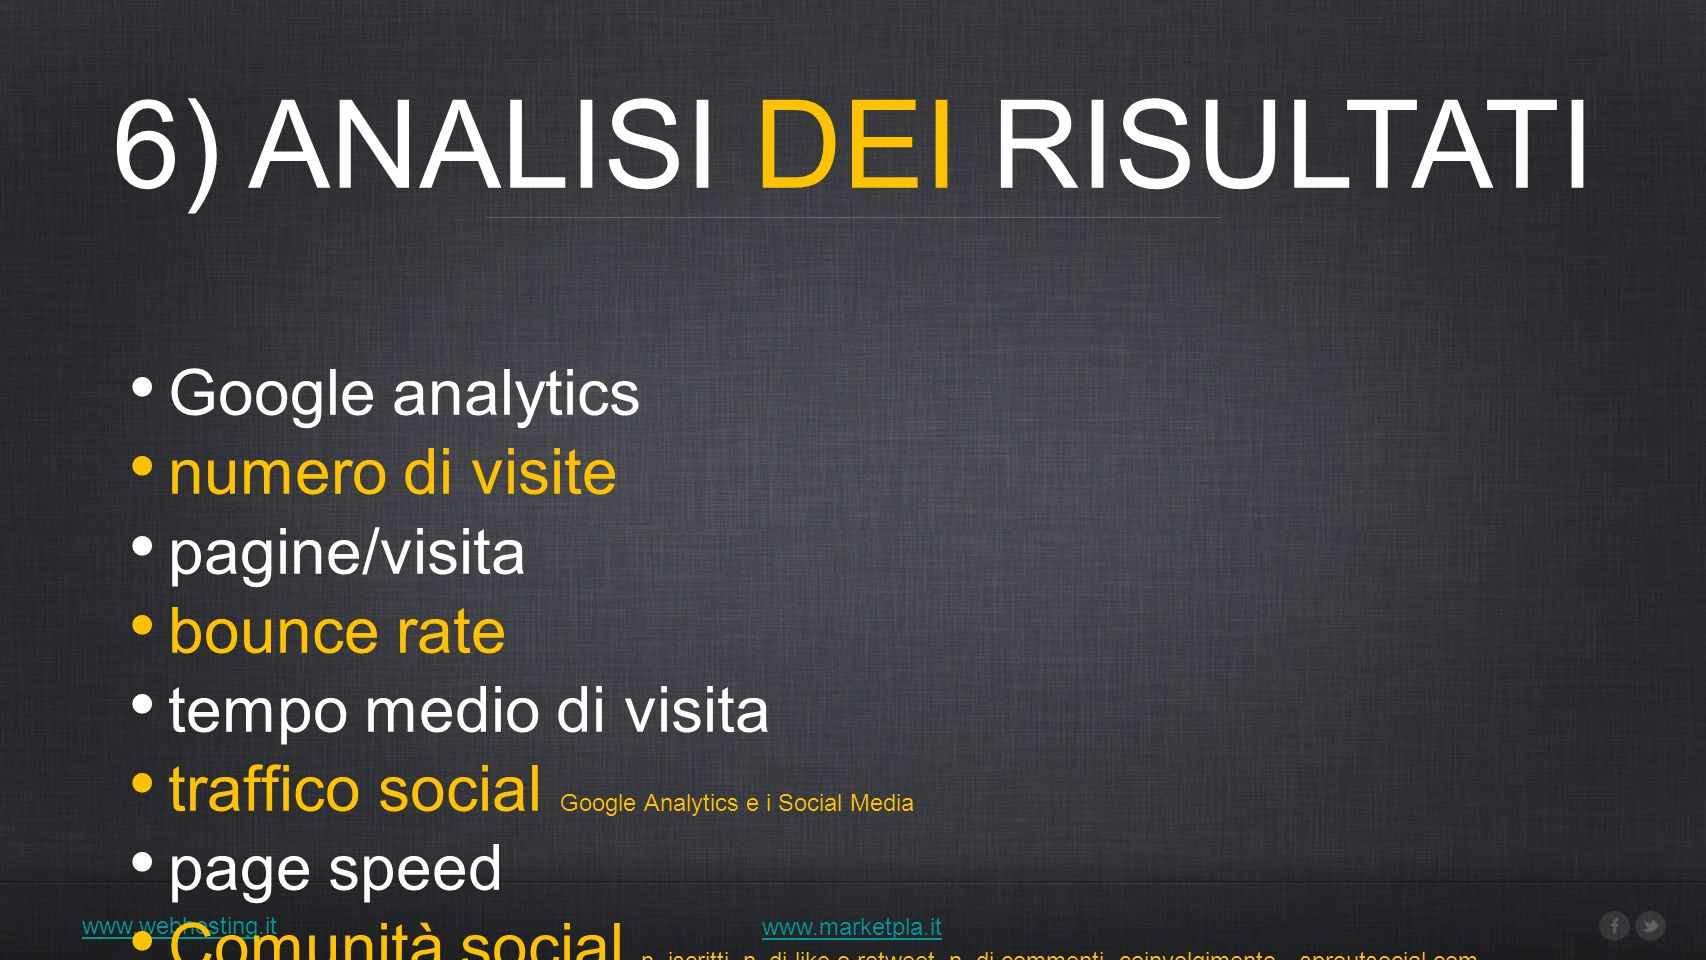 6) ANALISI DEI RISULTATI www.webhosting.it www.marketpla.it Google analytics numero di visite pagine/visita bounce rate tempo medio di visita traffico social Google Analytics e i Social Media page speed Comunità social n.